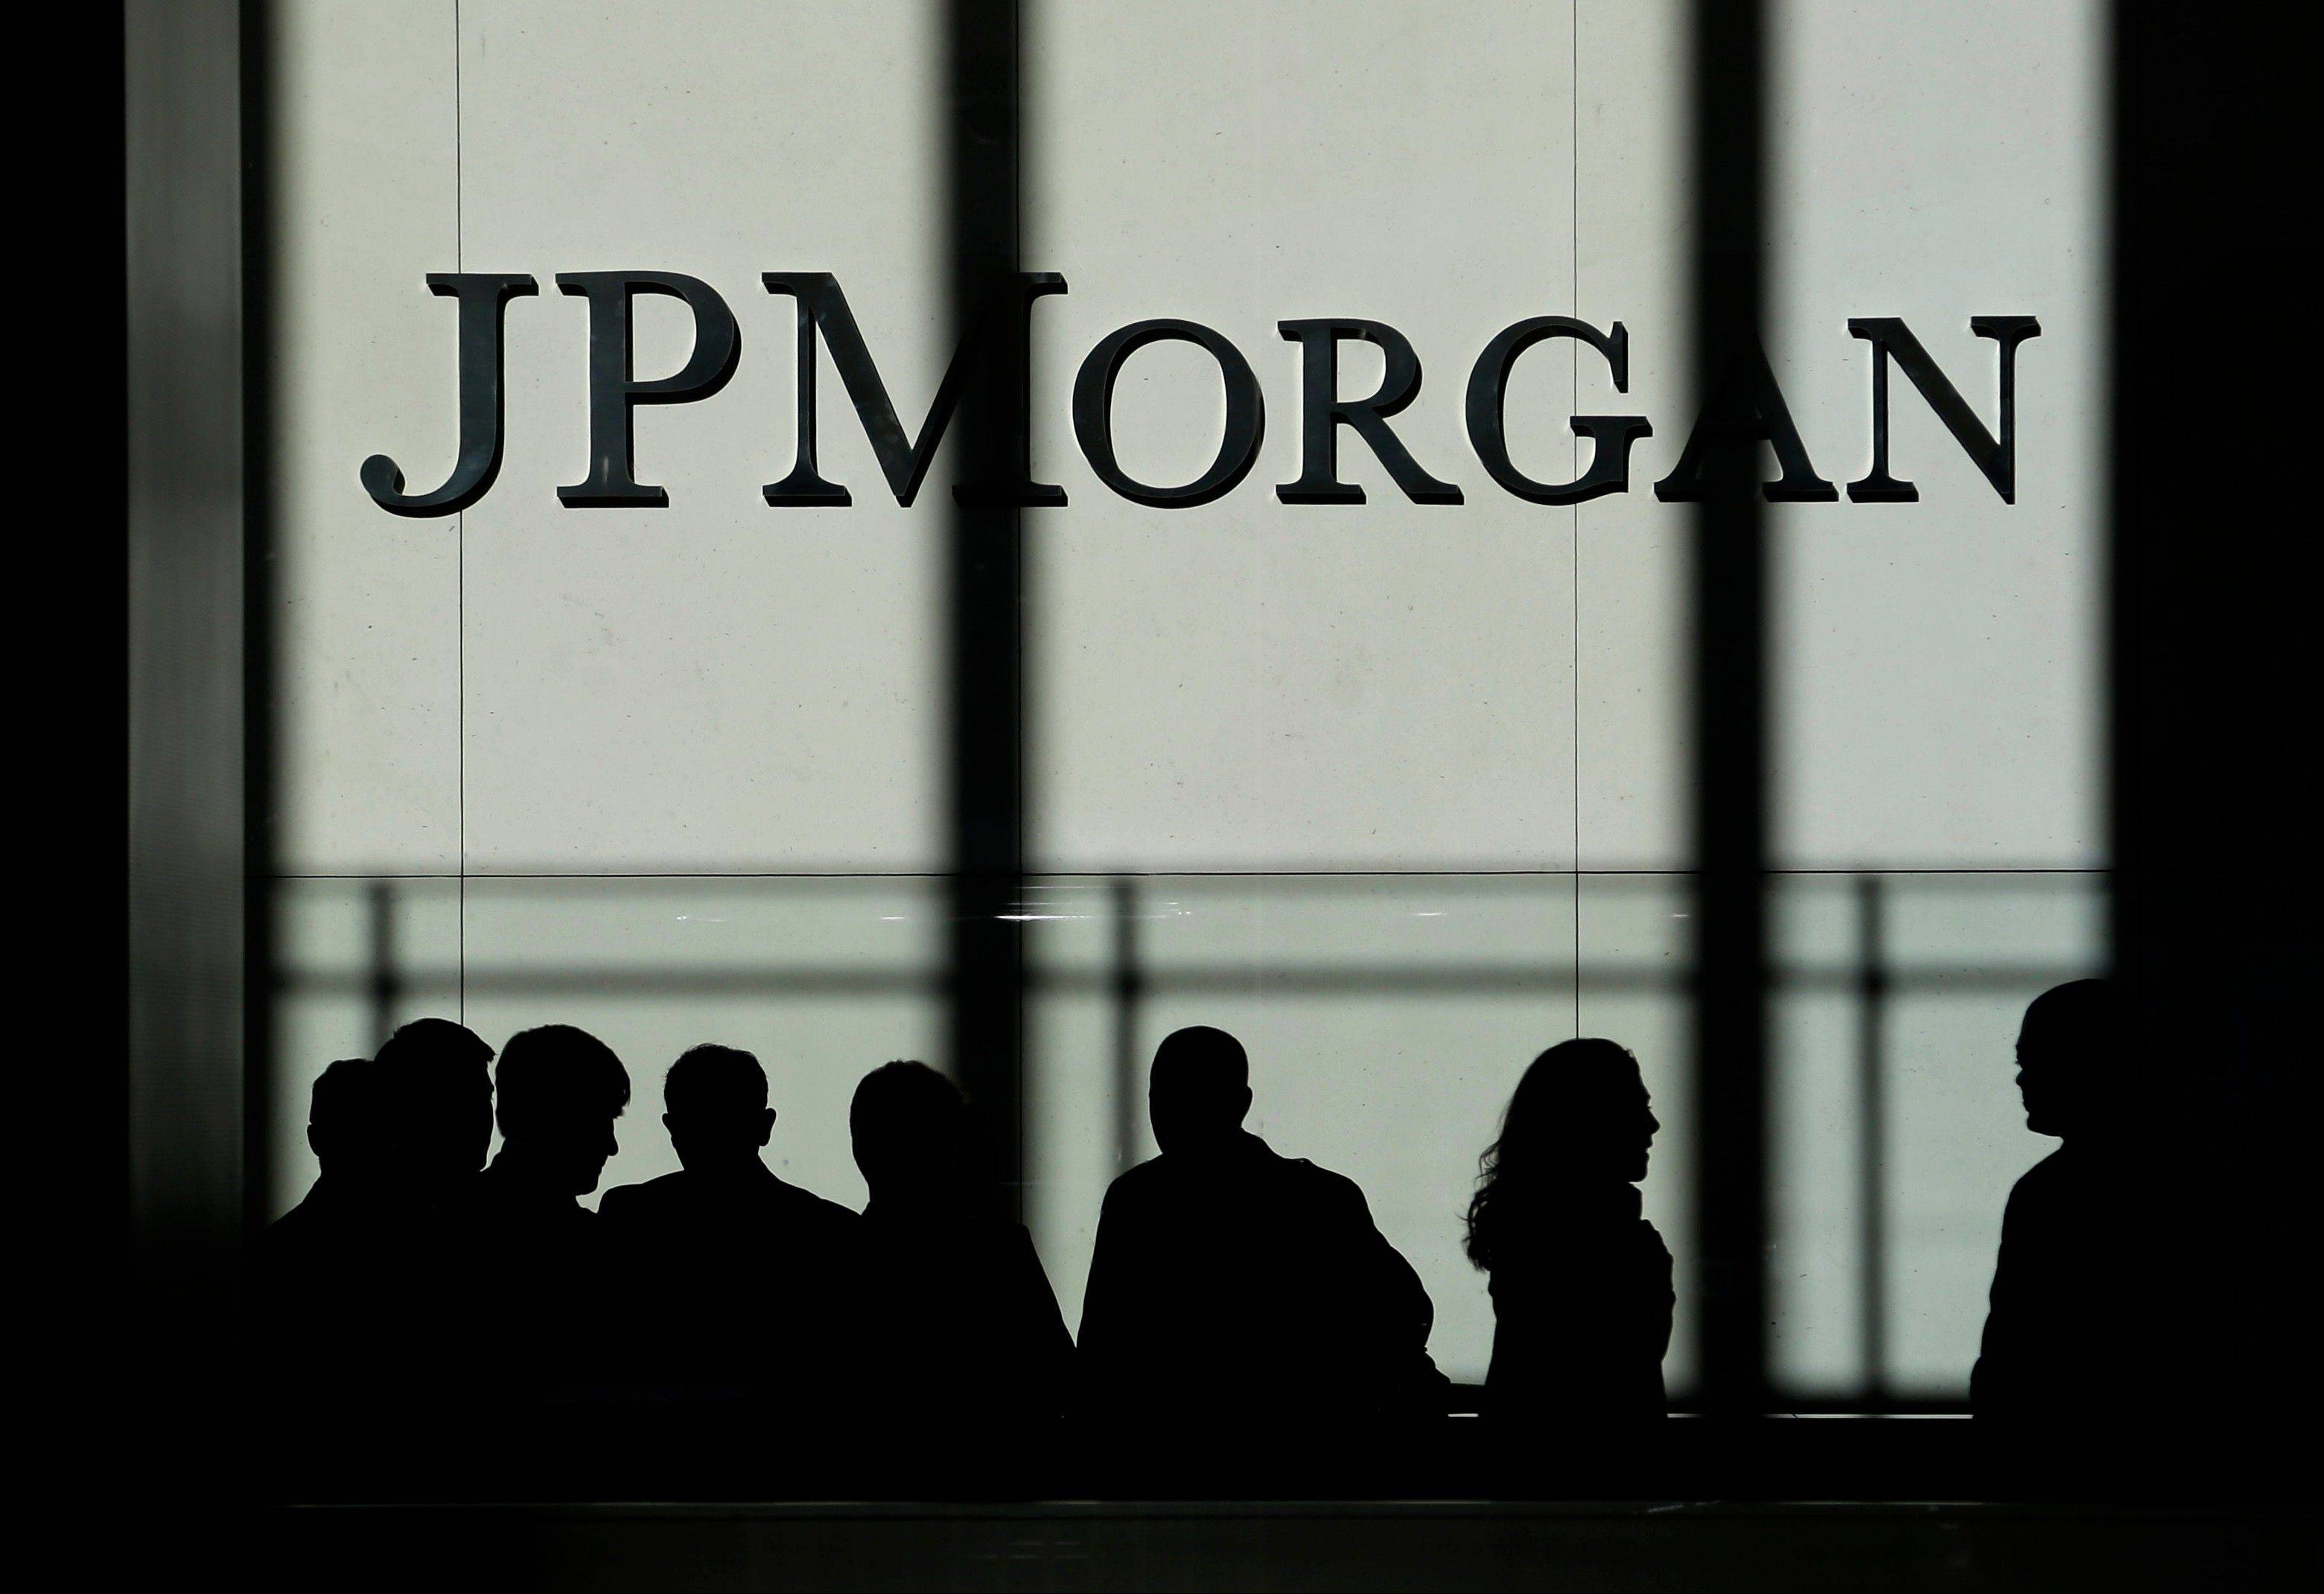 The JPMorgan Chase & Co. logo is displayed Monday at their headquarters in New York.